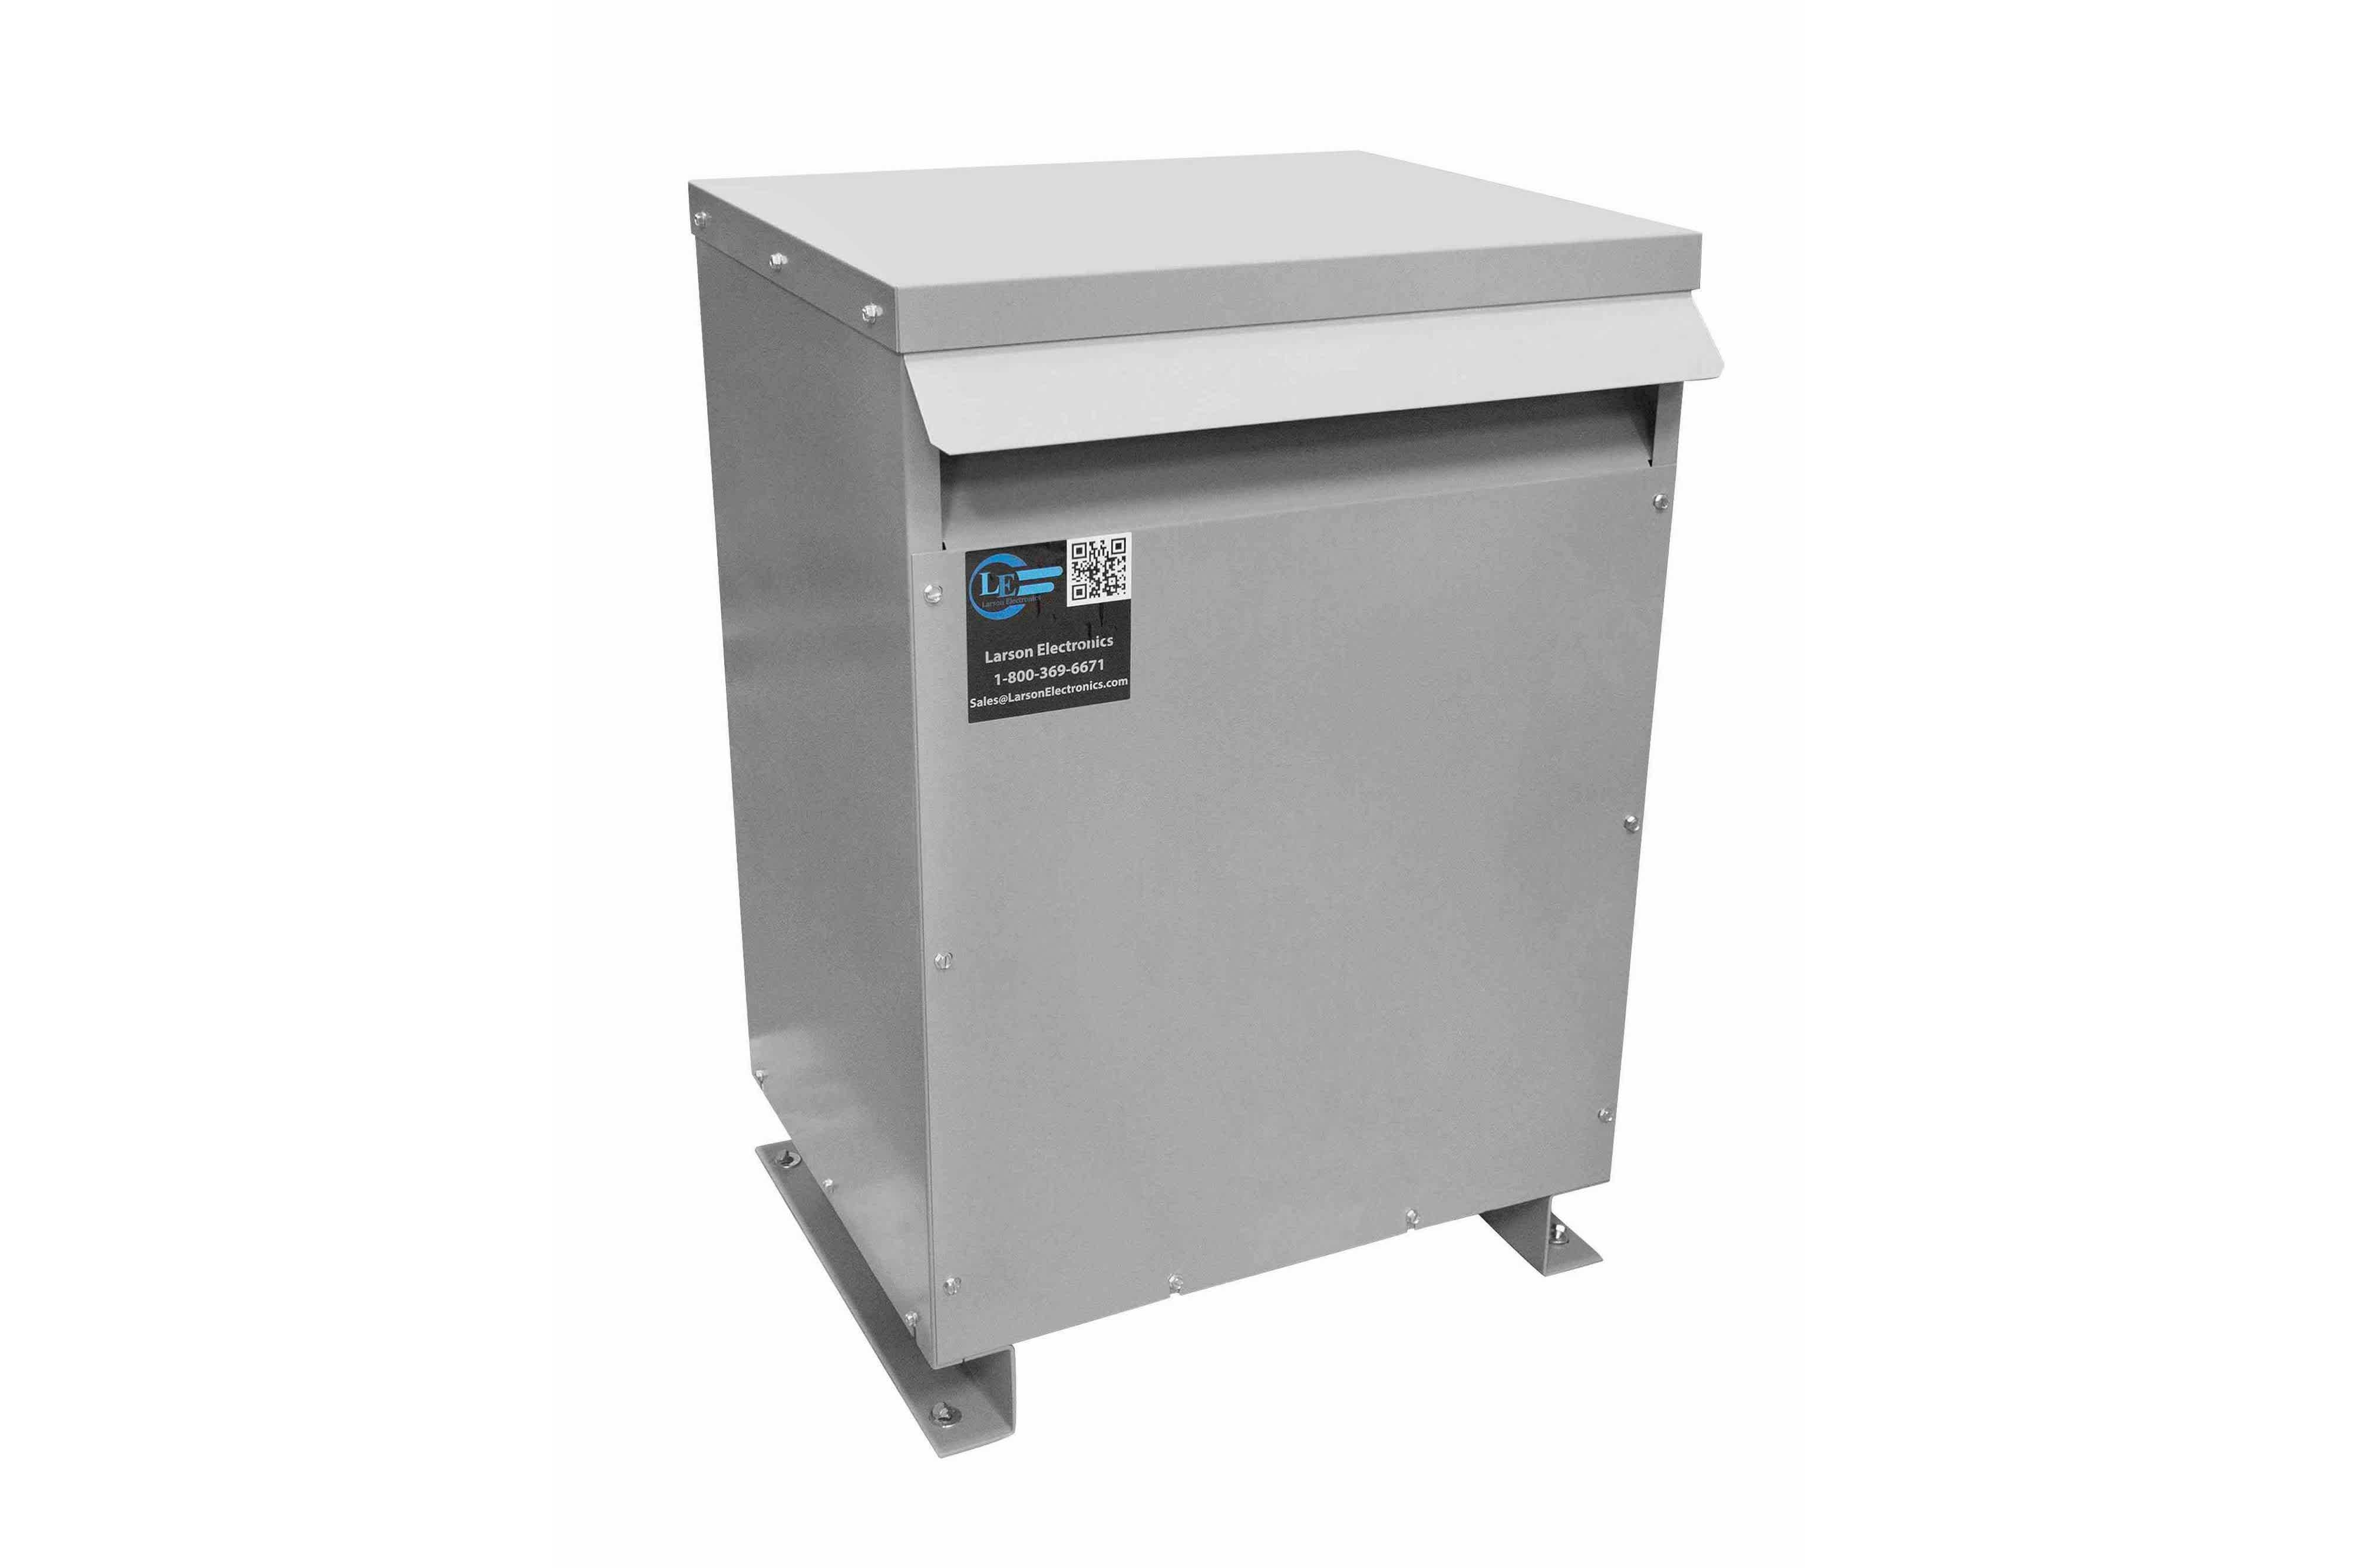 55 kVA 3PH Isolation Transformer, 380V Wye Primary, 240V Delta Secondary, N3R, Ventilated, 60 Hz